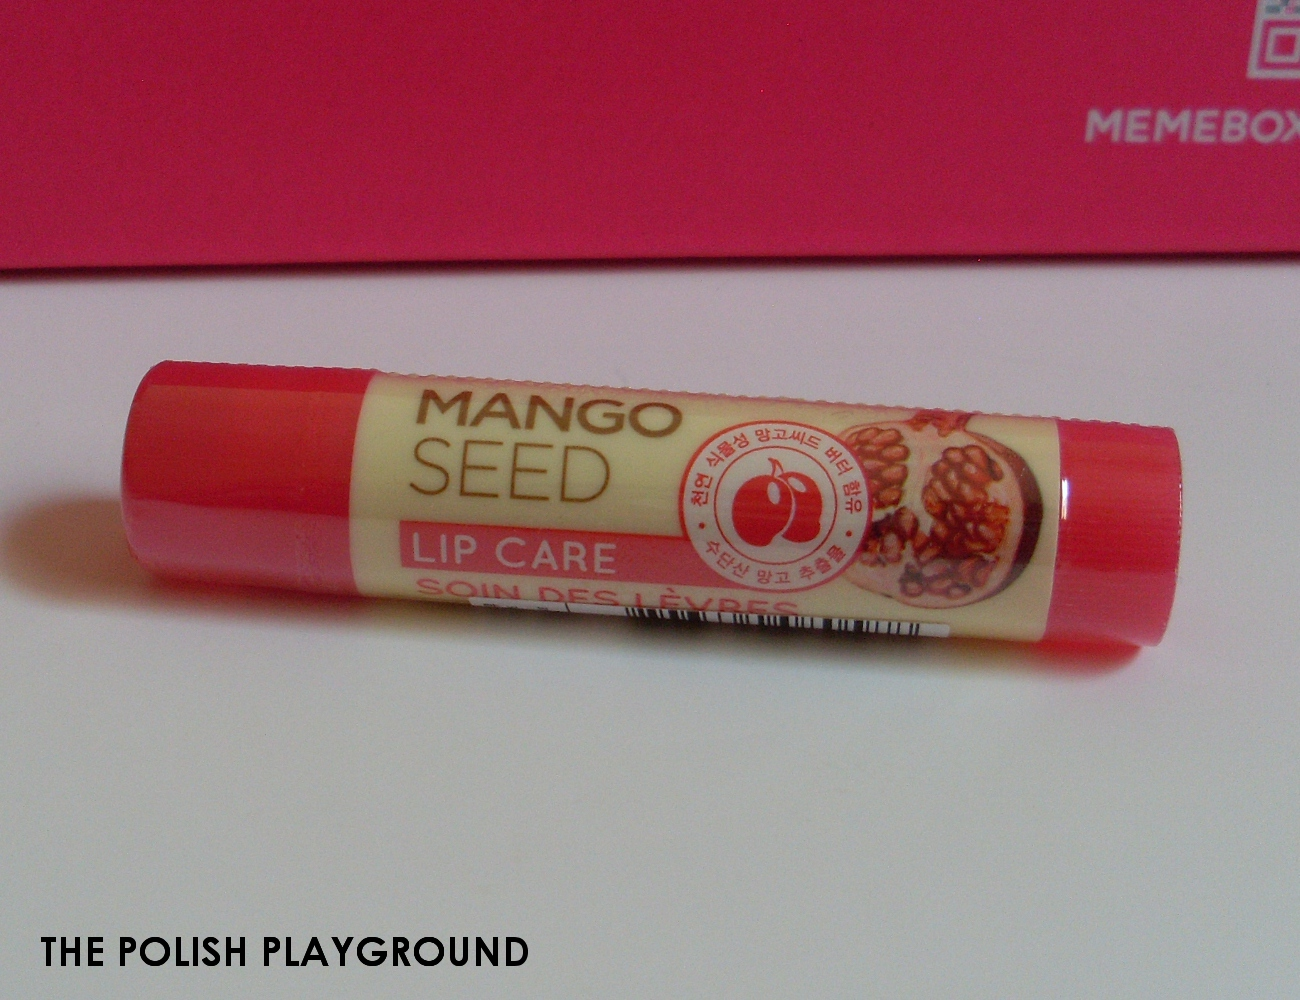 Memebox Superbox #40 Pomegranate Cosmetics Unboxing - The Face Shop Lovely Mix Mango Seed Lip Care 01 Pomegranate